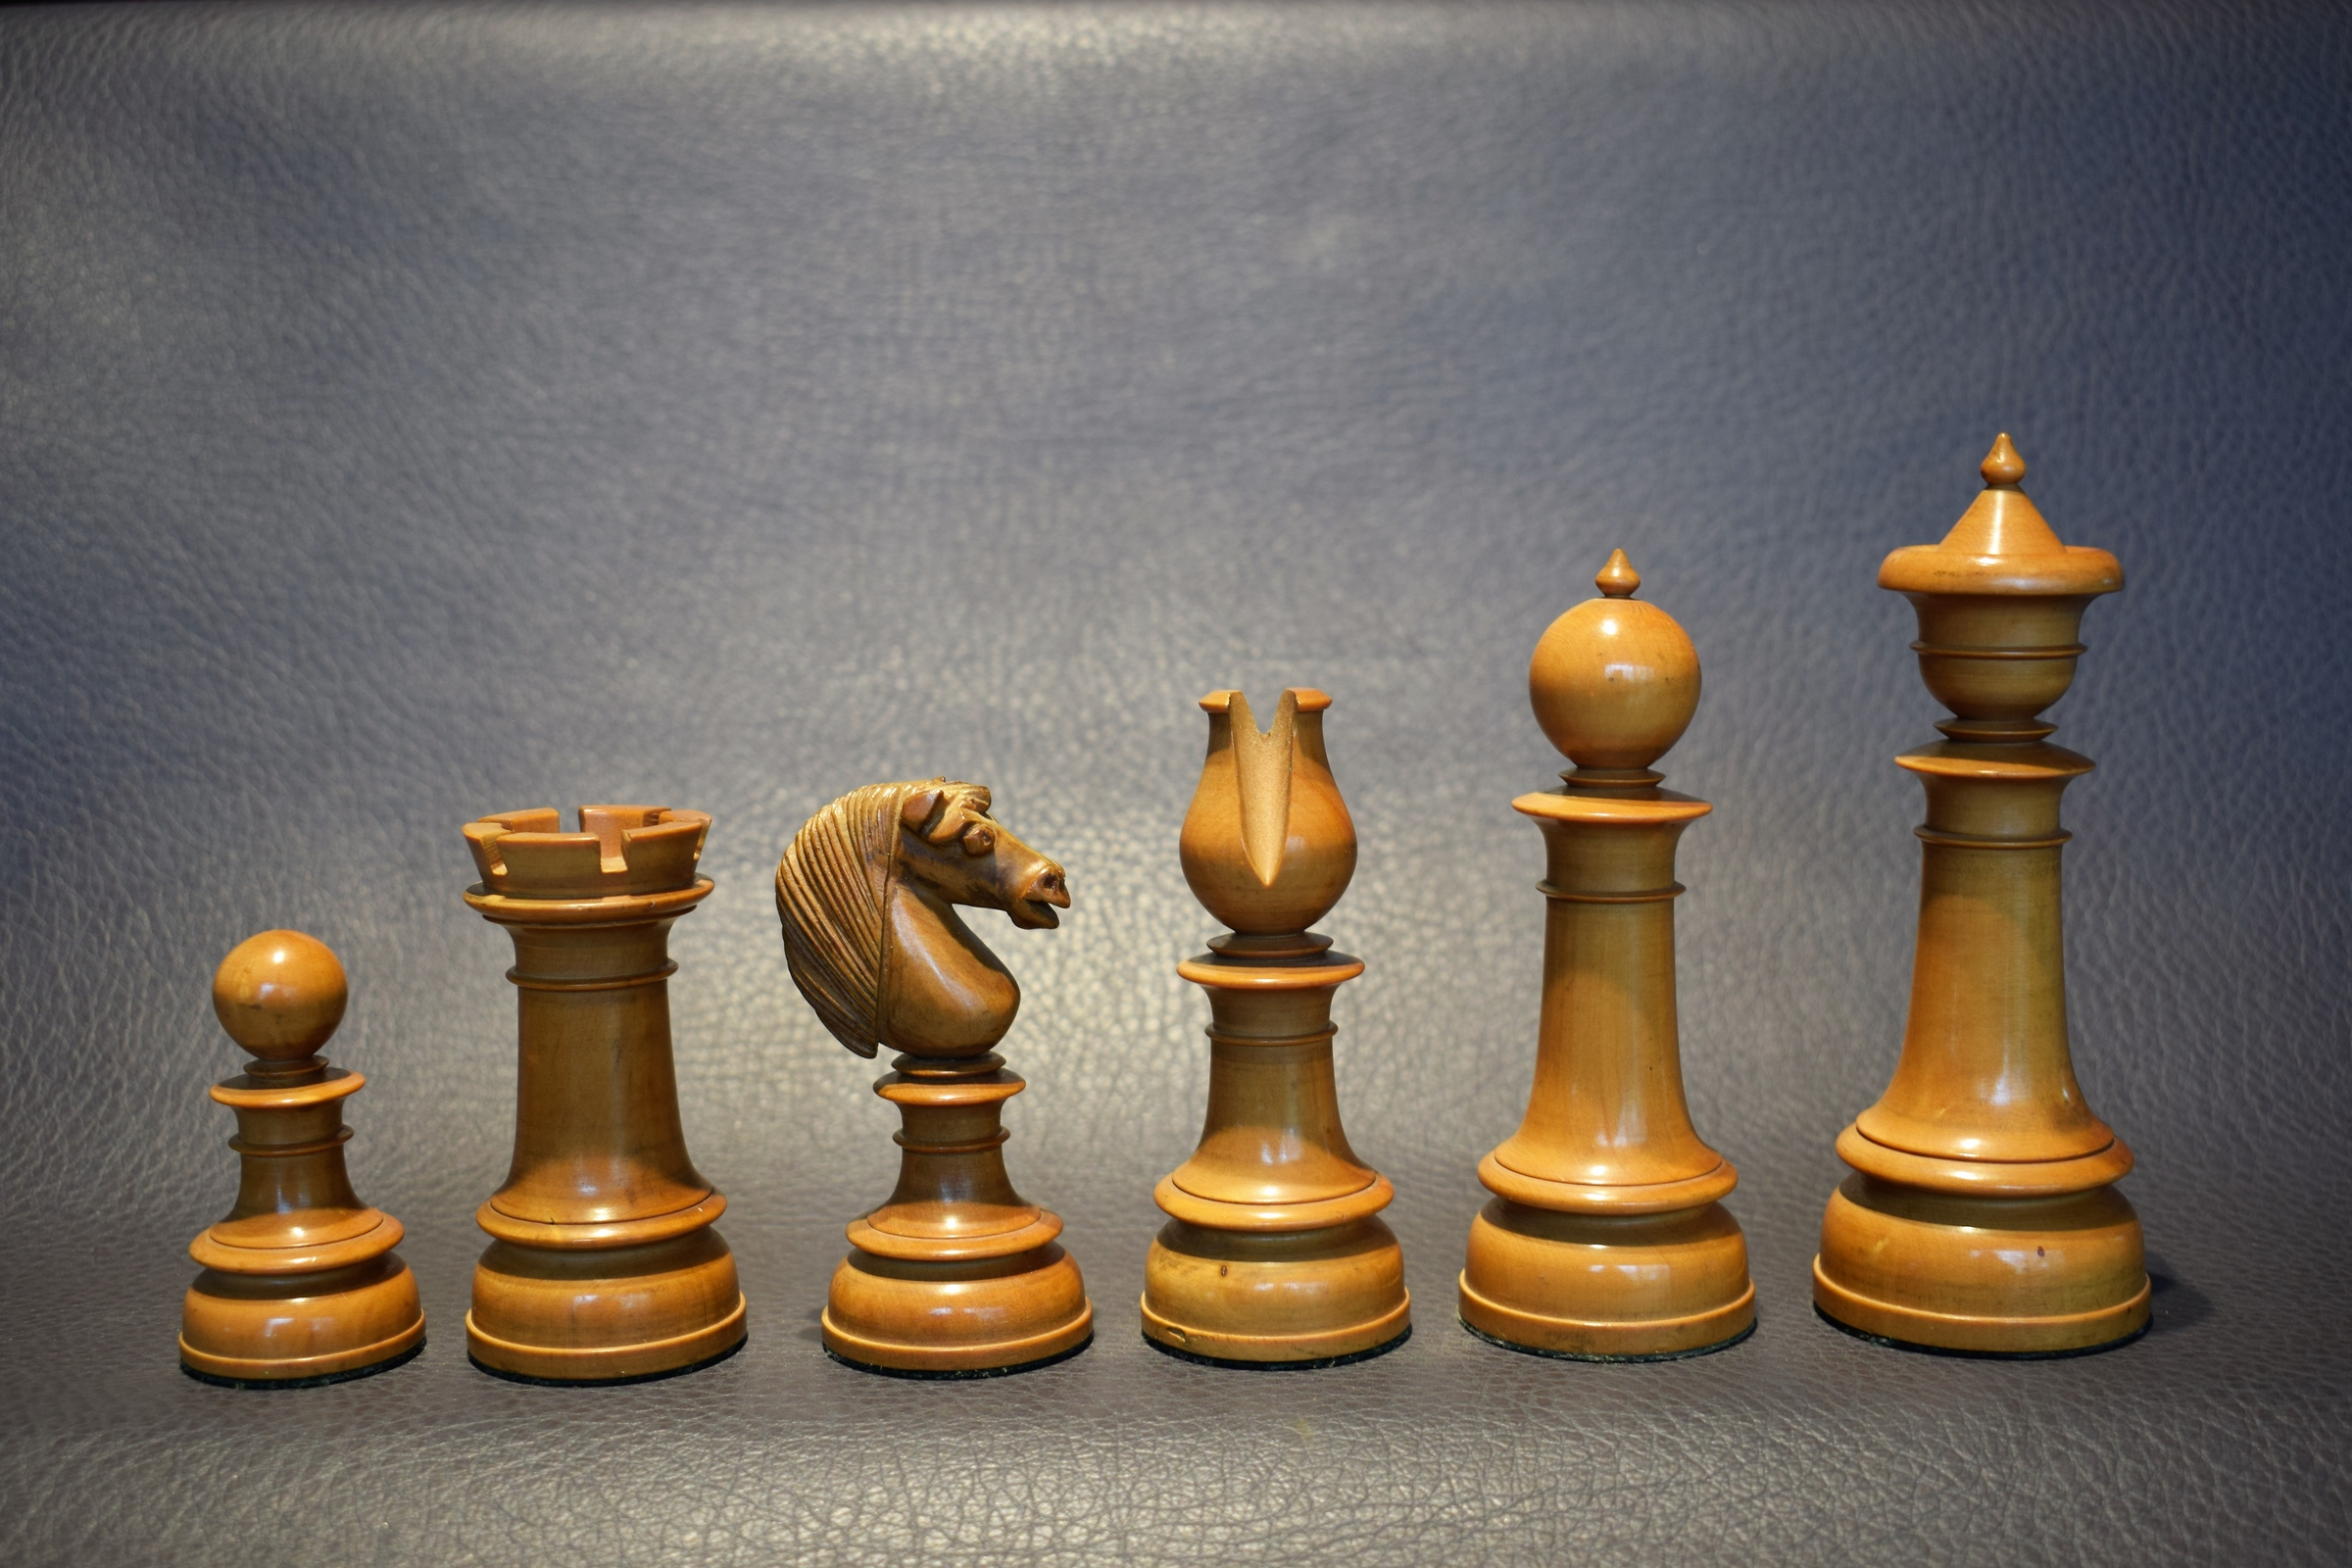 393 - Antique Chess Set, Northern Upright, 5 inch, England, mid 19th century, ebony and boxwood - Dorland Chess (10)